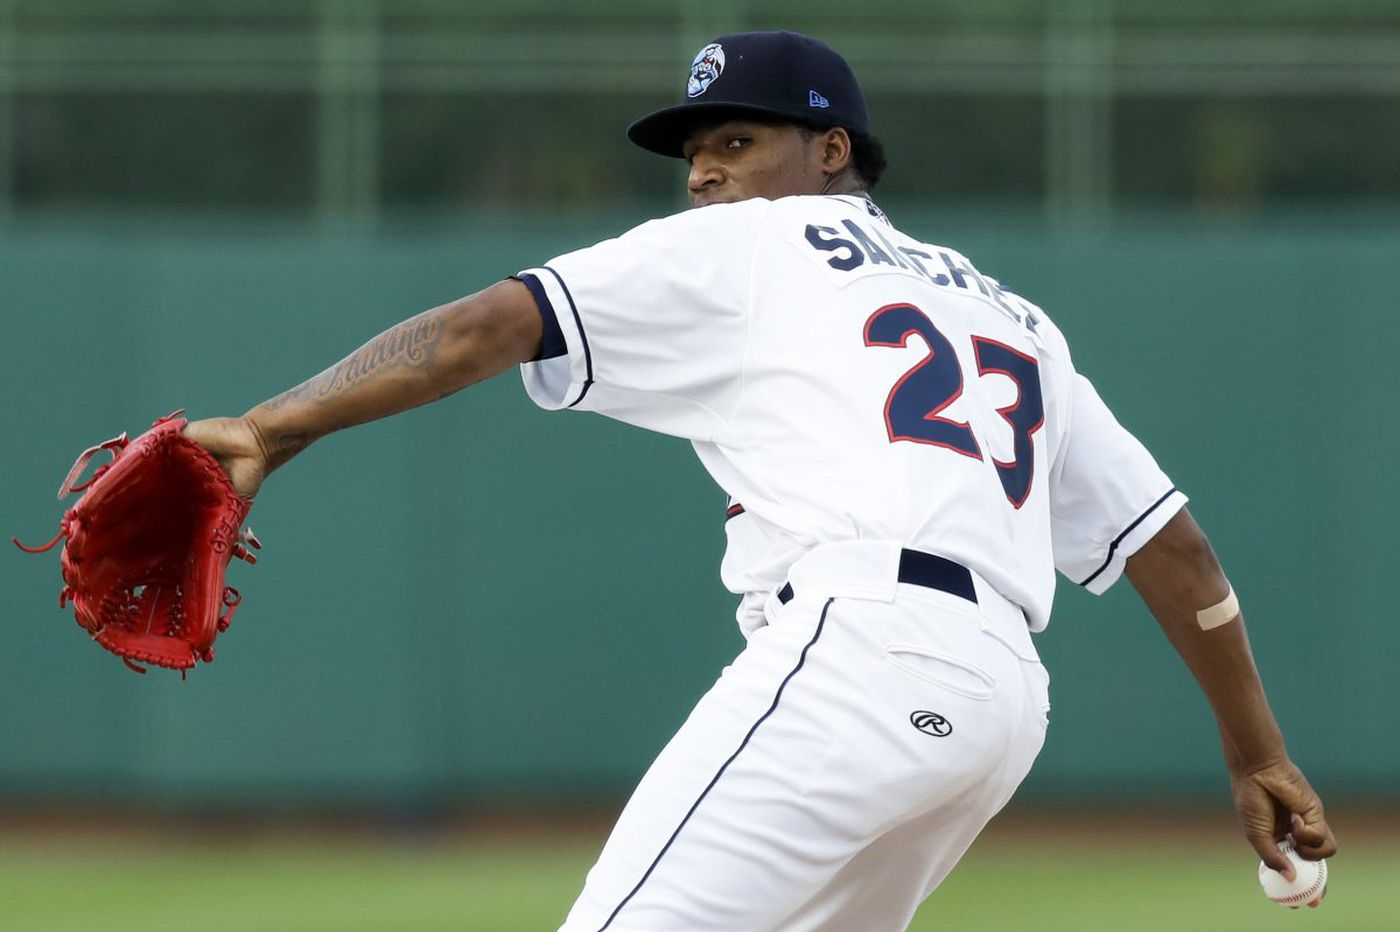 One night with Phillies pitching prospect Sixto Sanchez and his 100-mph fastball